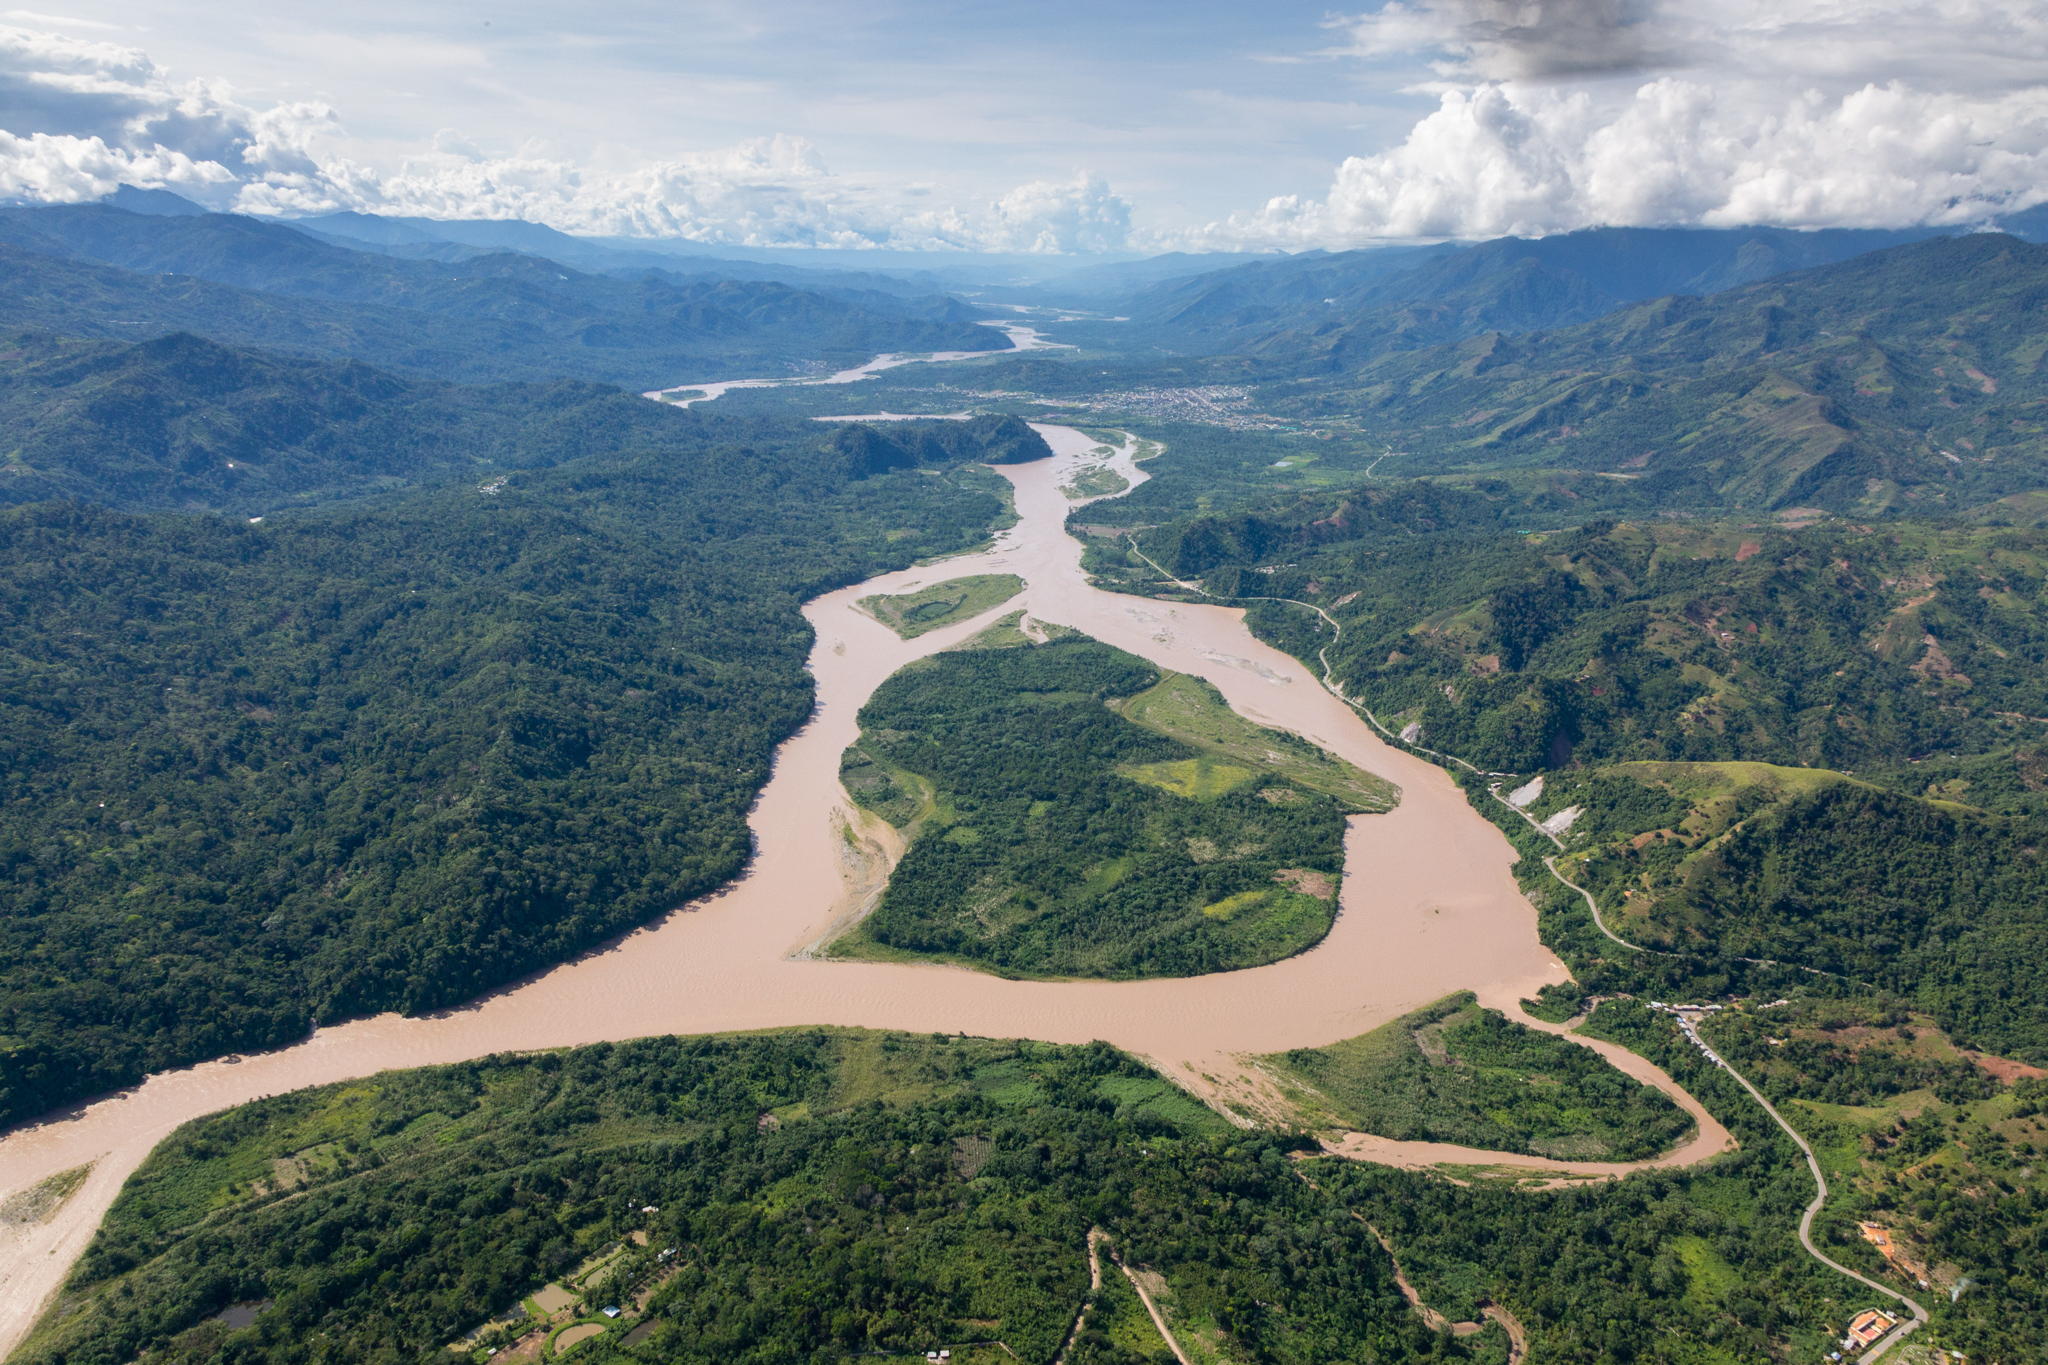 The Apurimac River, with the Vilcabamba Range at right. Photo by Andy Isaacson